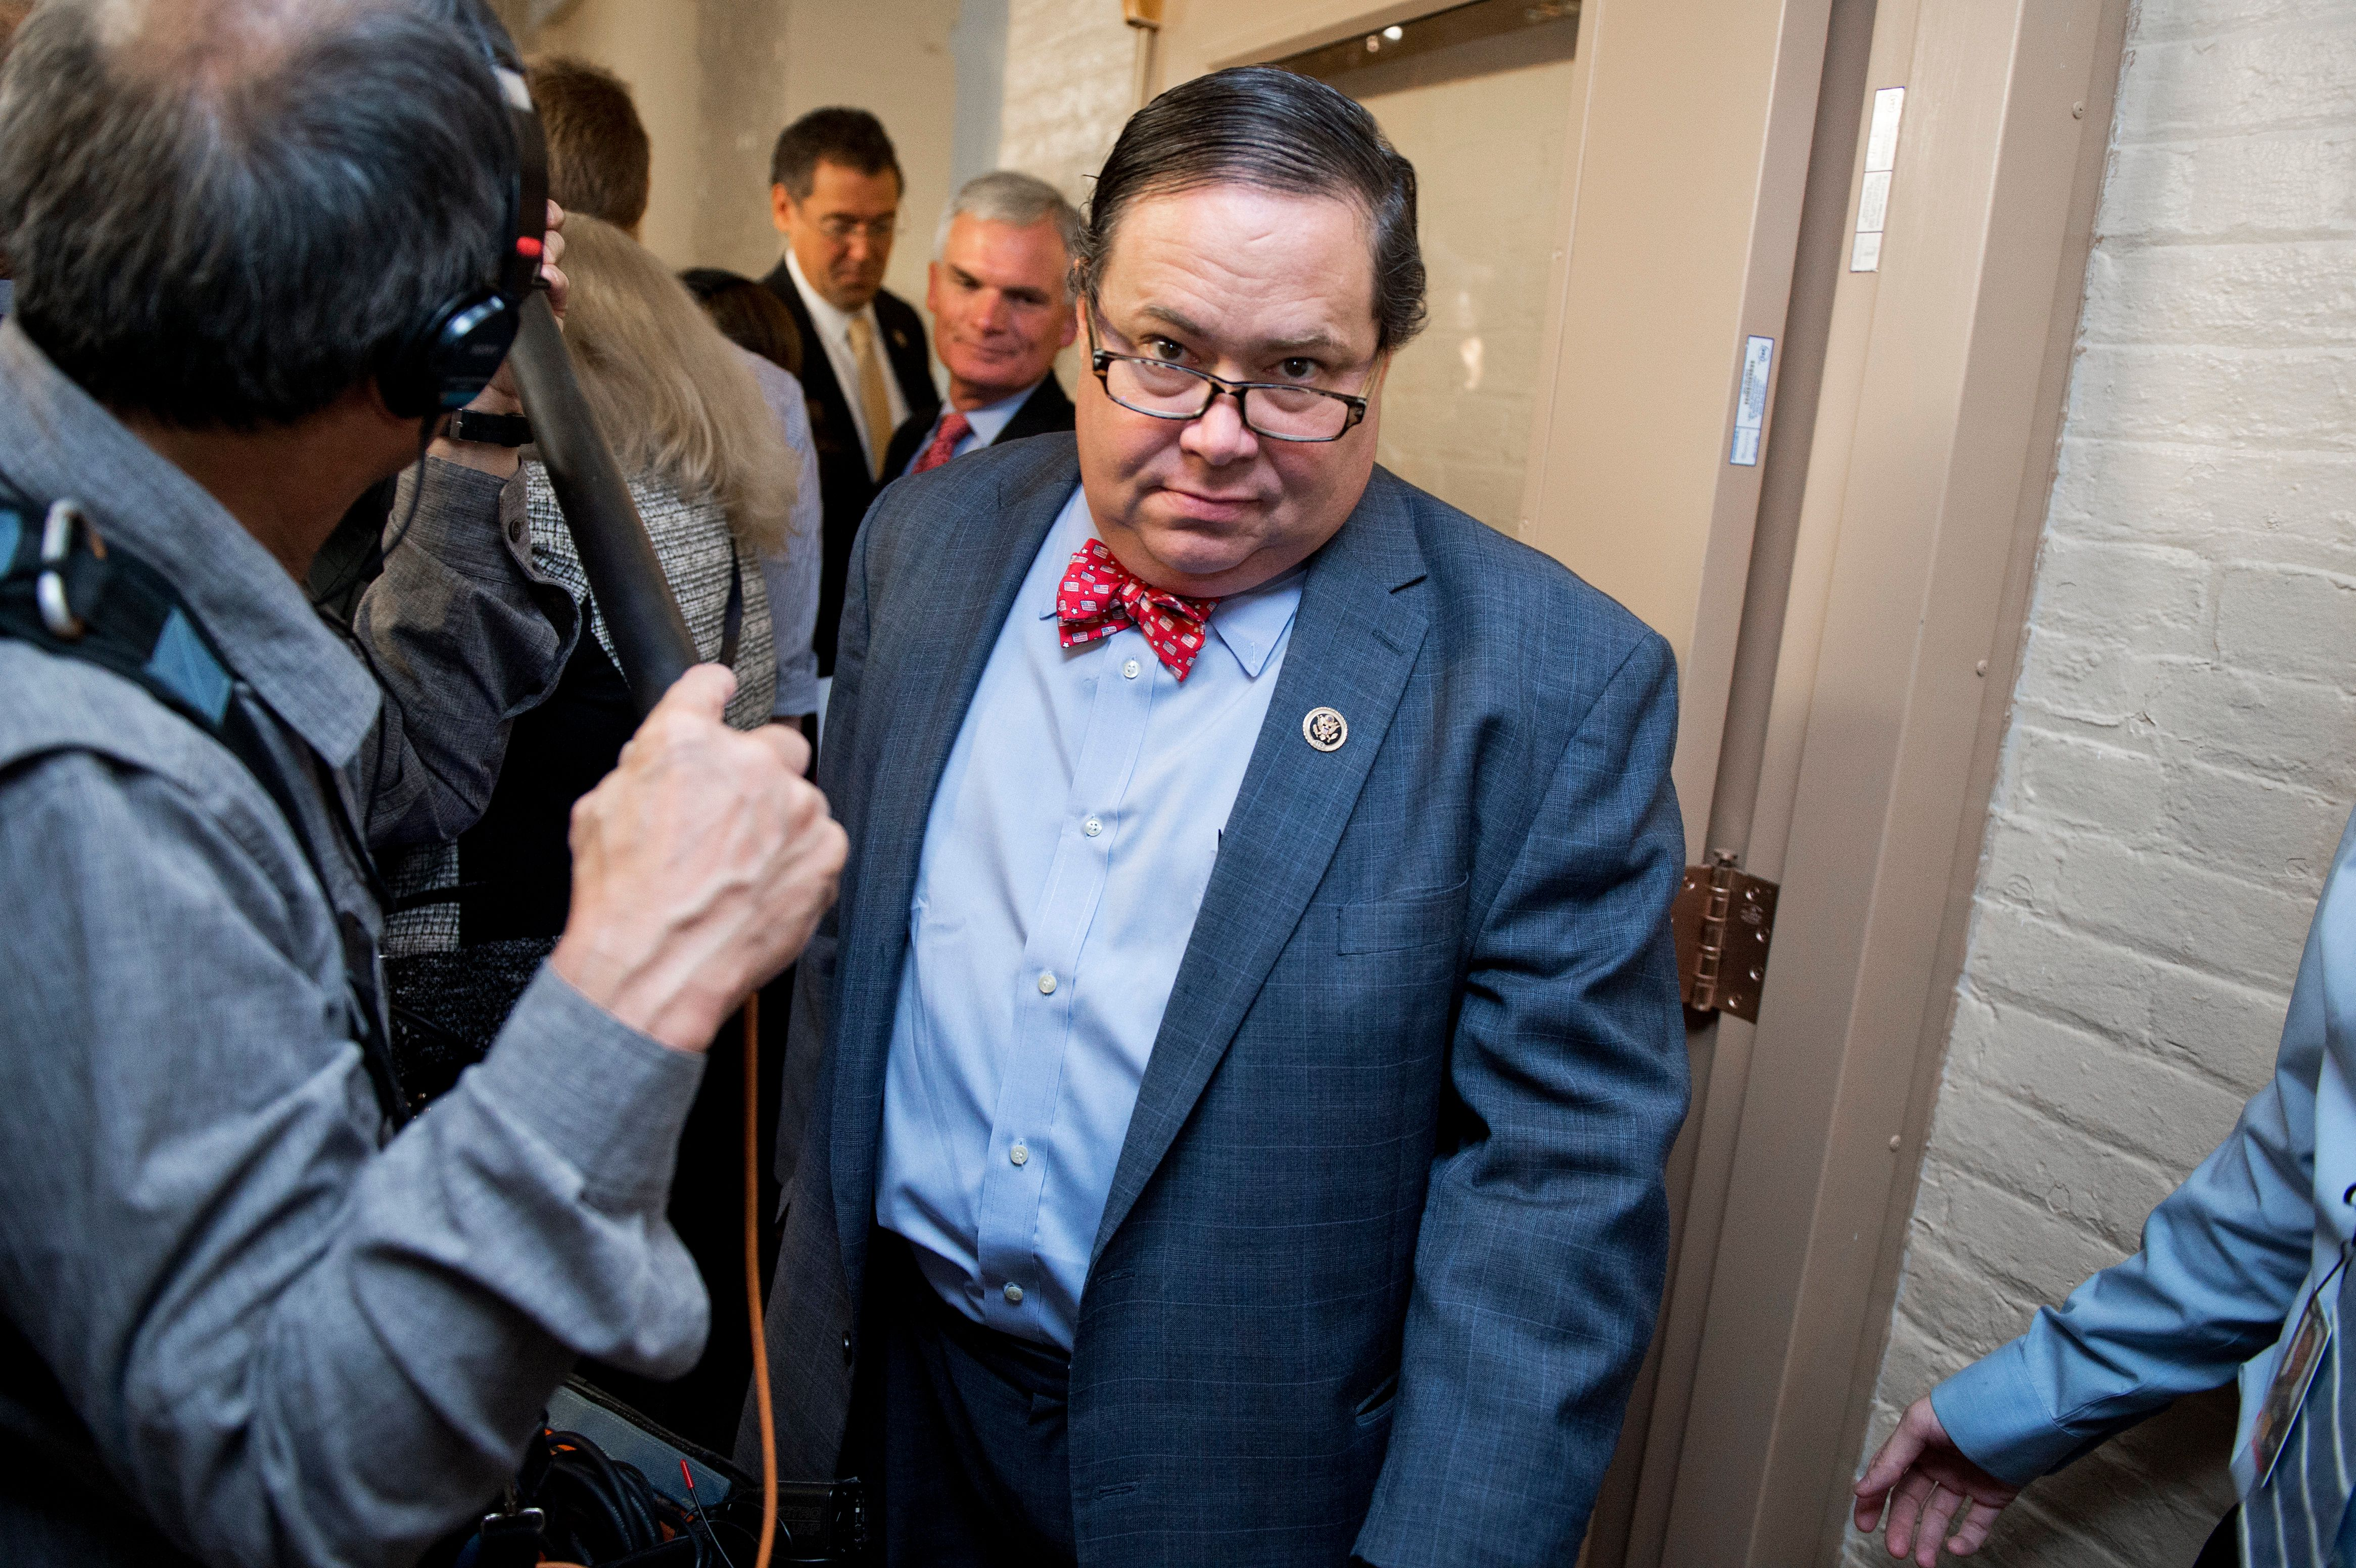 UNITED STATES - OCTOBER 27: Rep. Blake Farenthold, R-Texas, leaves a meeting of the House Republican Conference in the Capitol, October 27, 2015. (Photo By Tom Williams/CQ Roll Call)